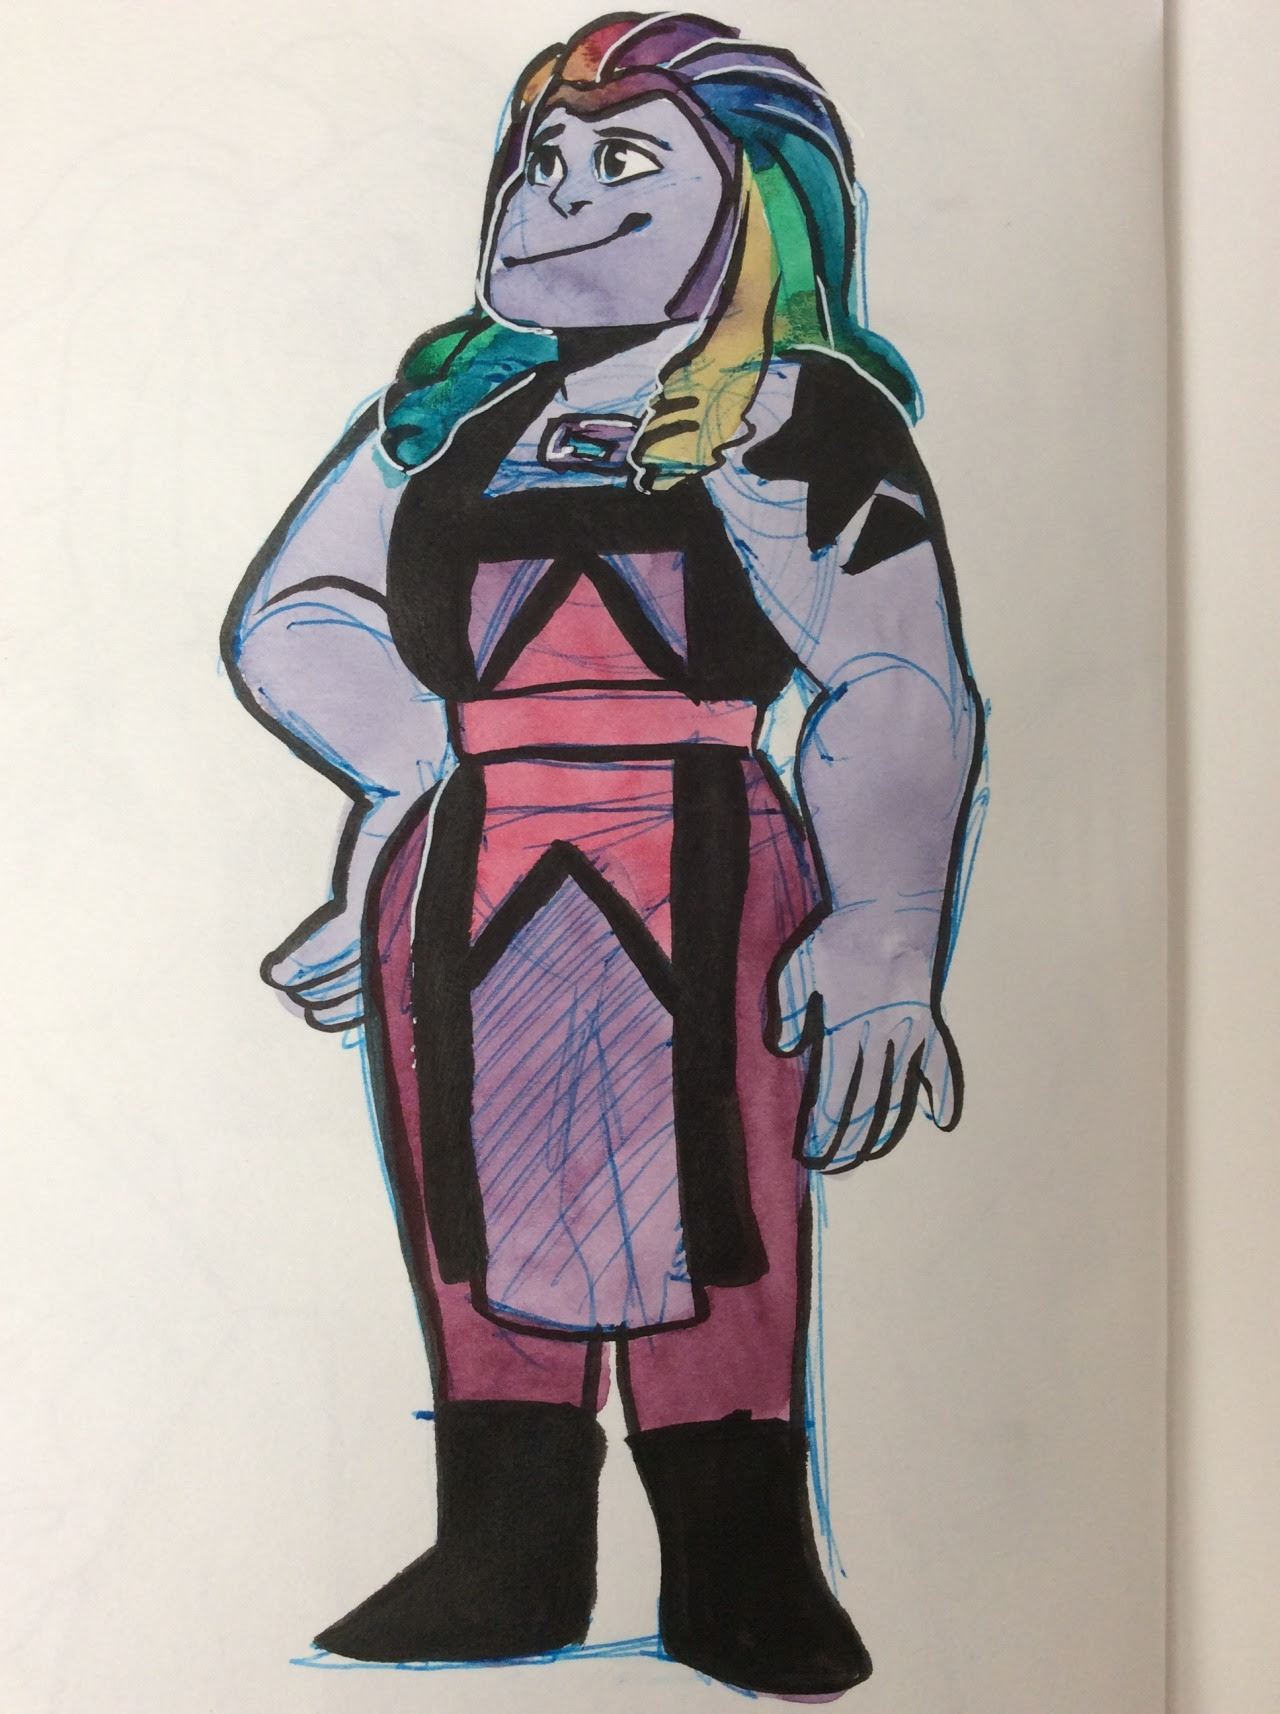 I love bismuth so much and I hope she gets a redemption arc